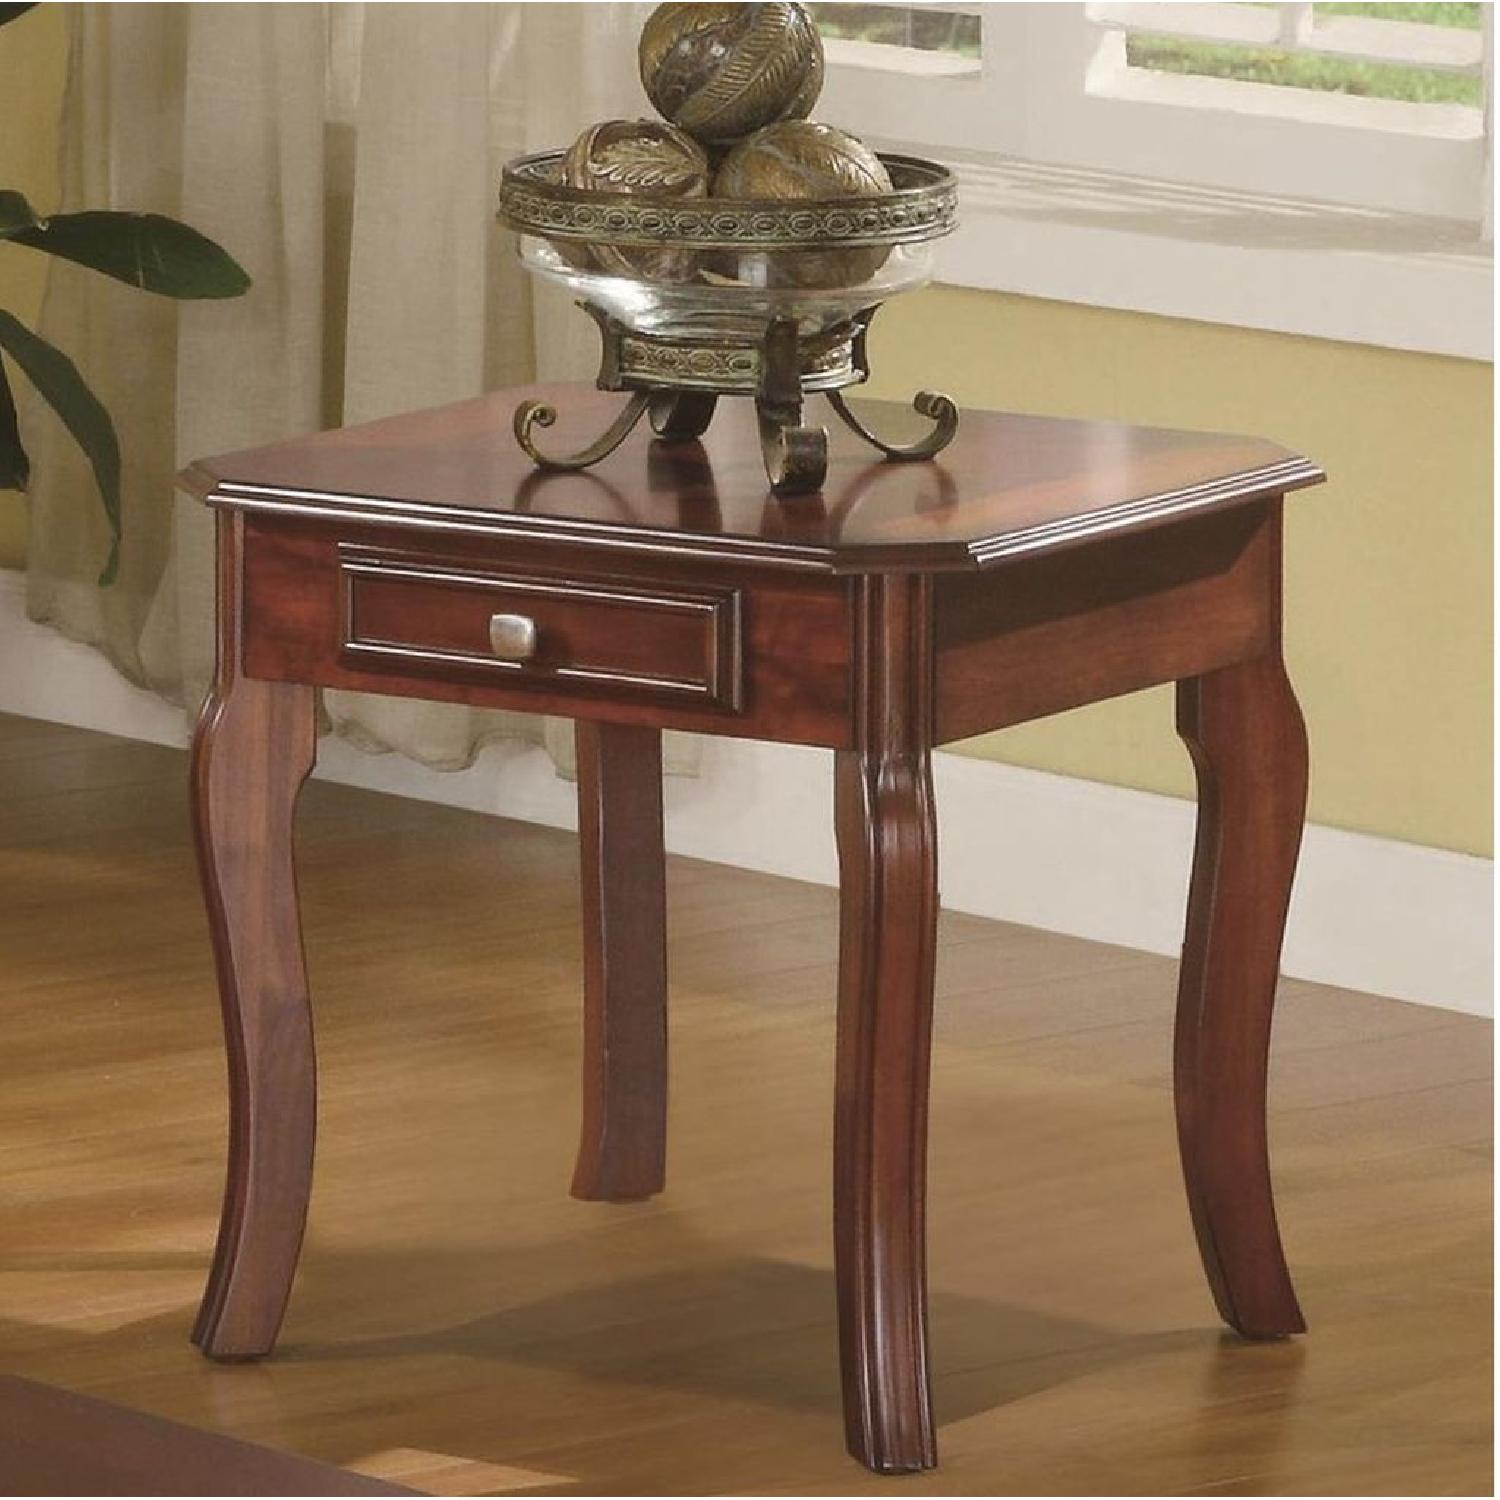 3-Piece Coffee & End Table Set in Warm Bourbon Finish - image-1